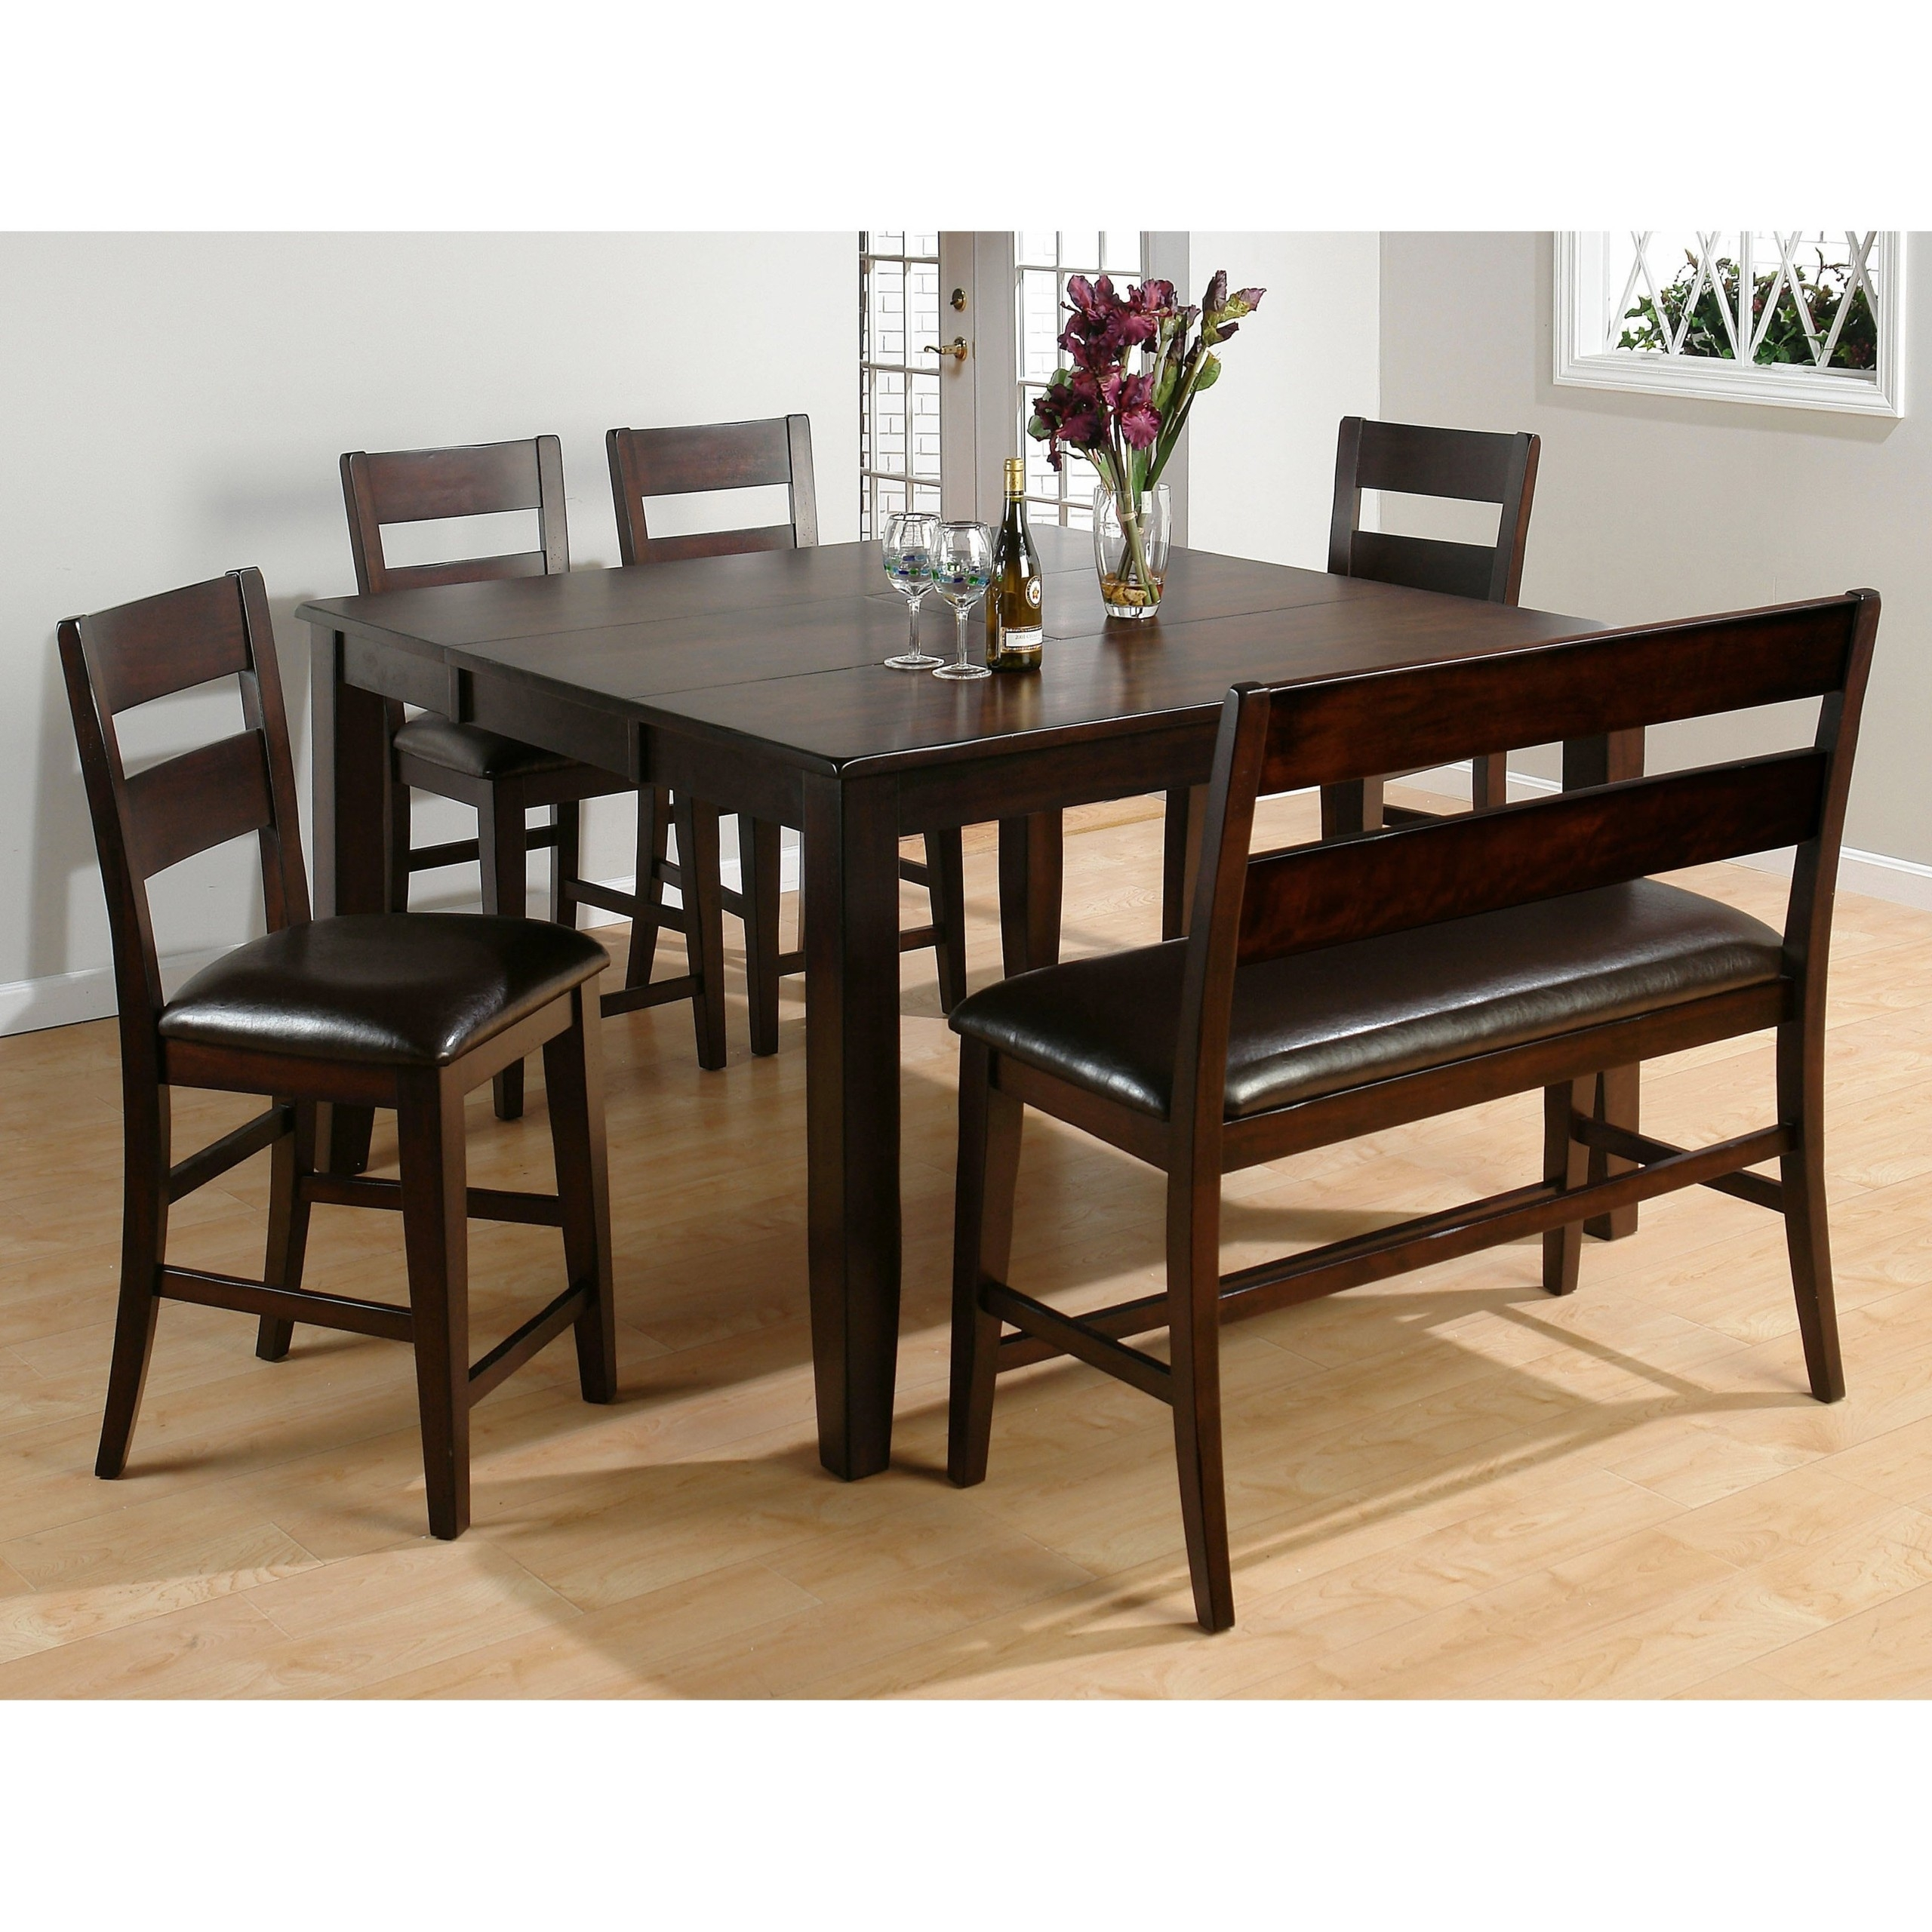 Picture of: Counter Height Table With Bench Seating Ideas On Foter